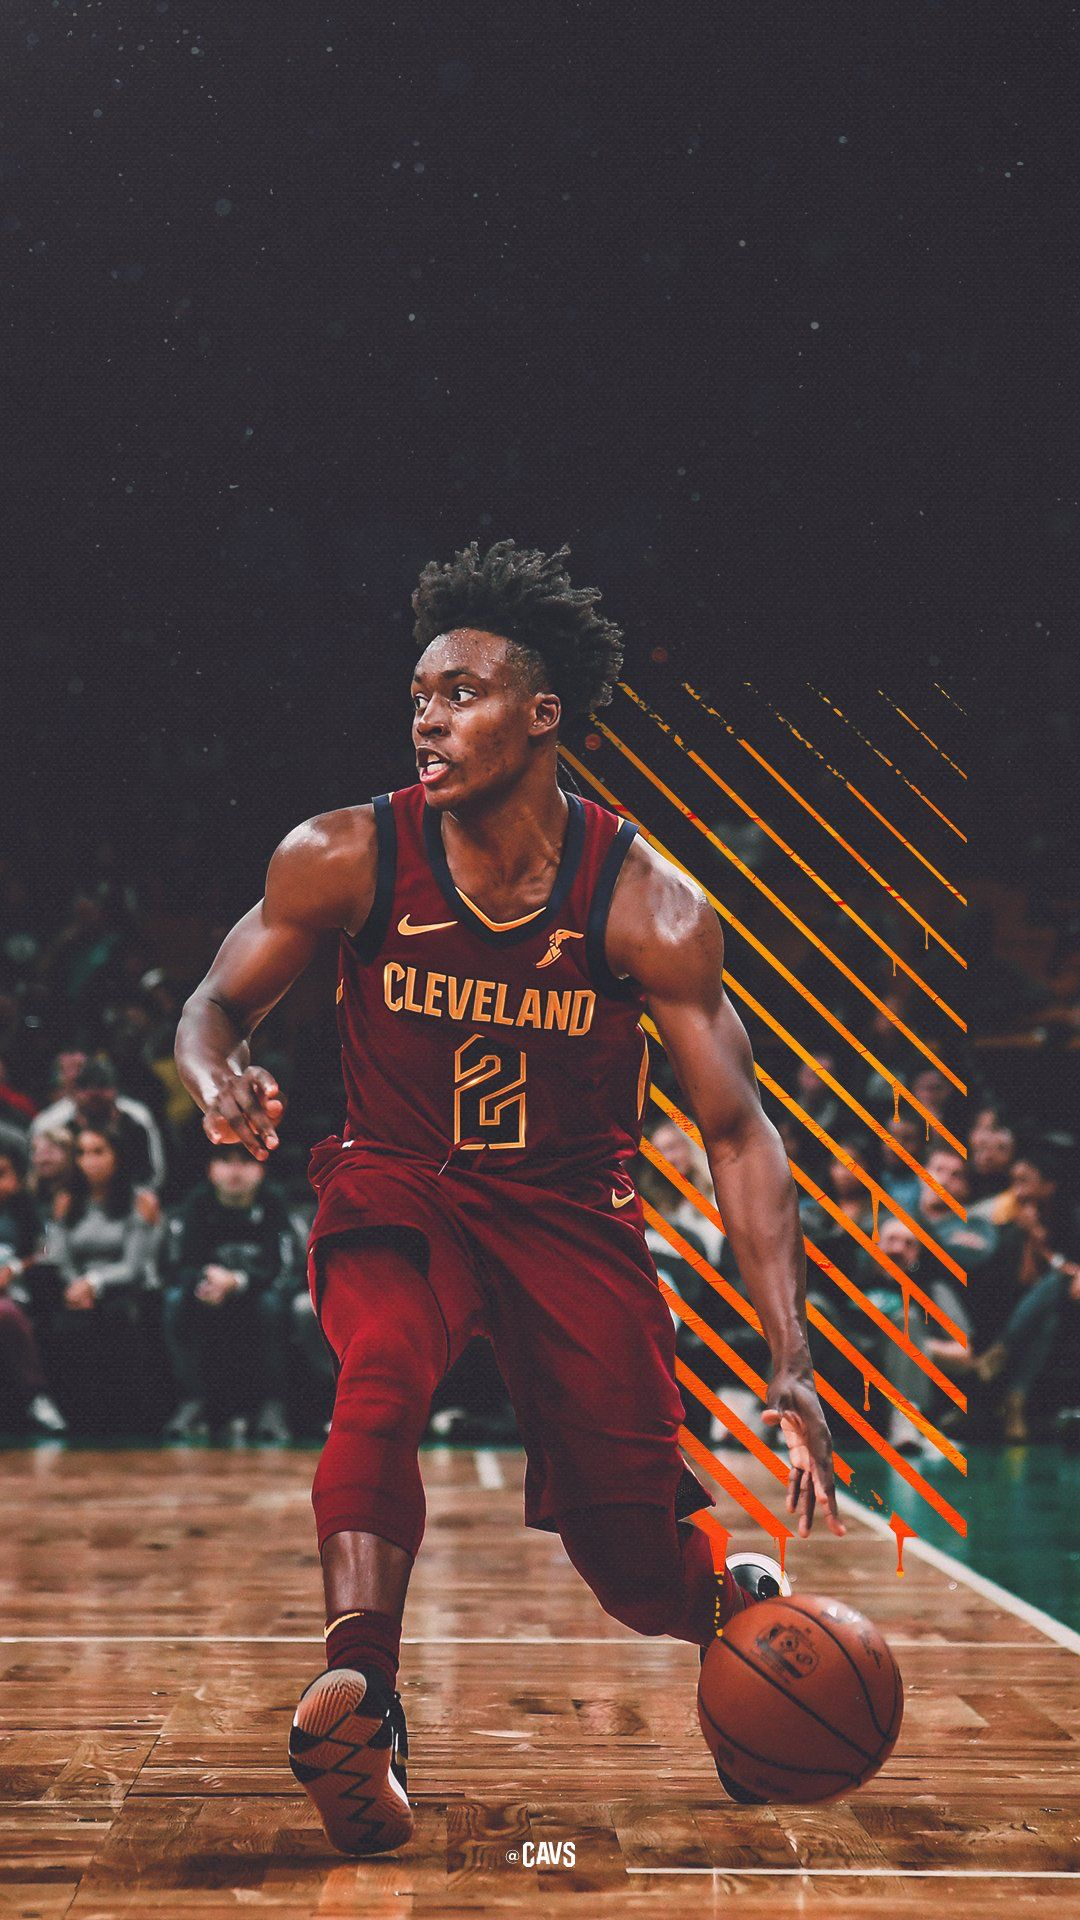 Pin By Tanner Lind On Sports Graphics Cavs Basketball Cavaliers Nba Cavs